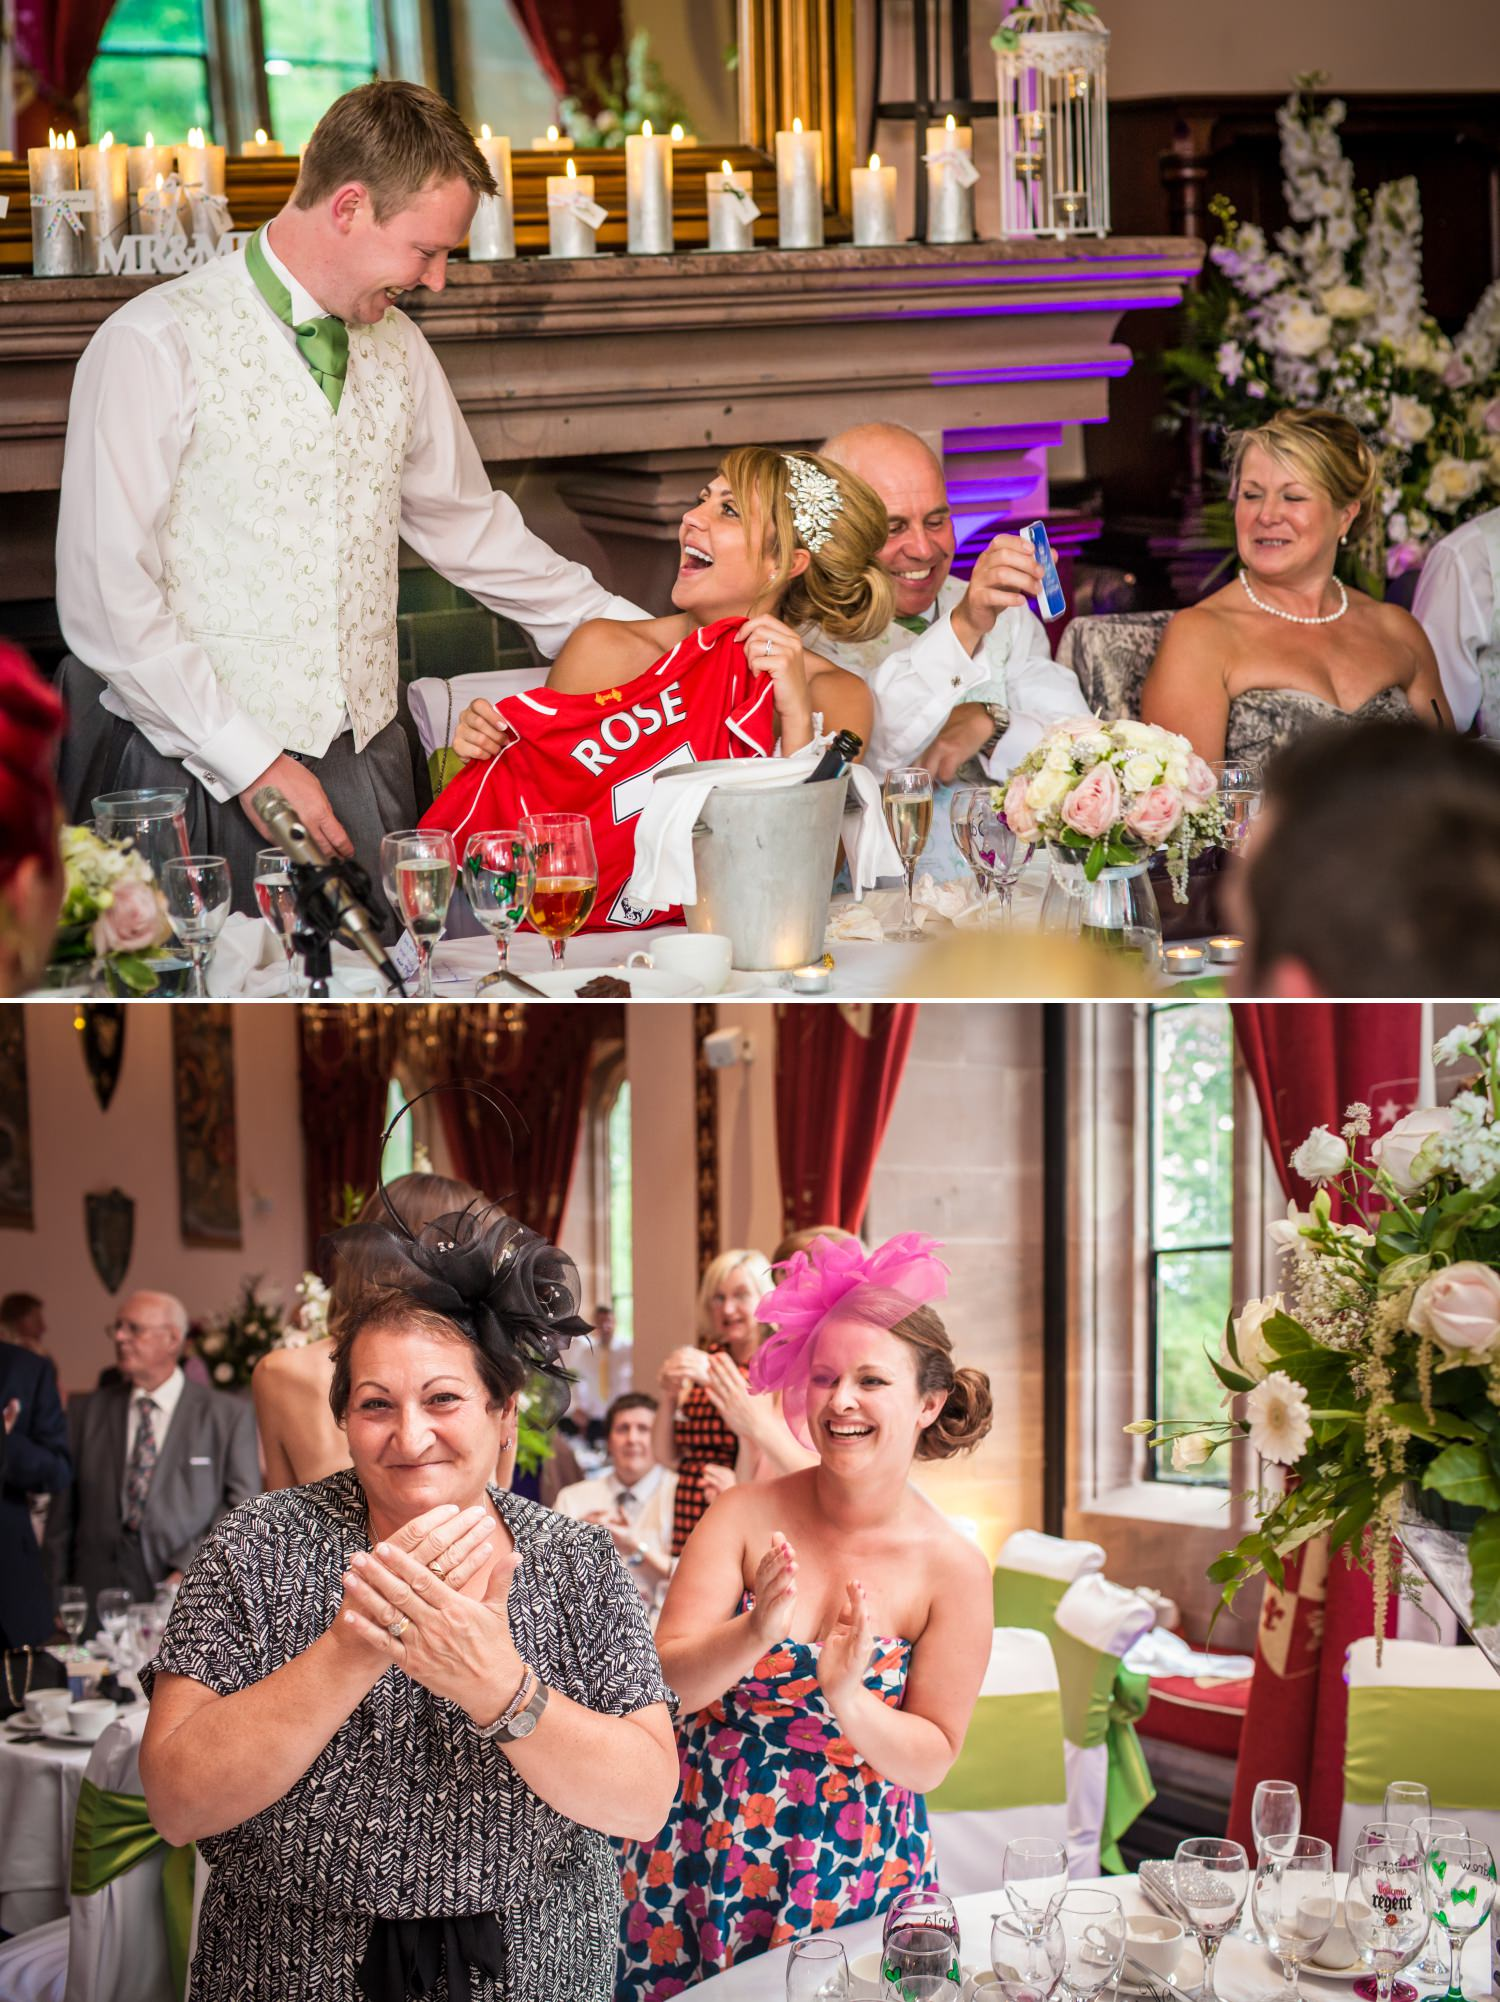 Guests clapping in Peckforton Castle, Cheshire Wedding photograph